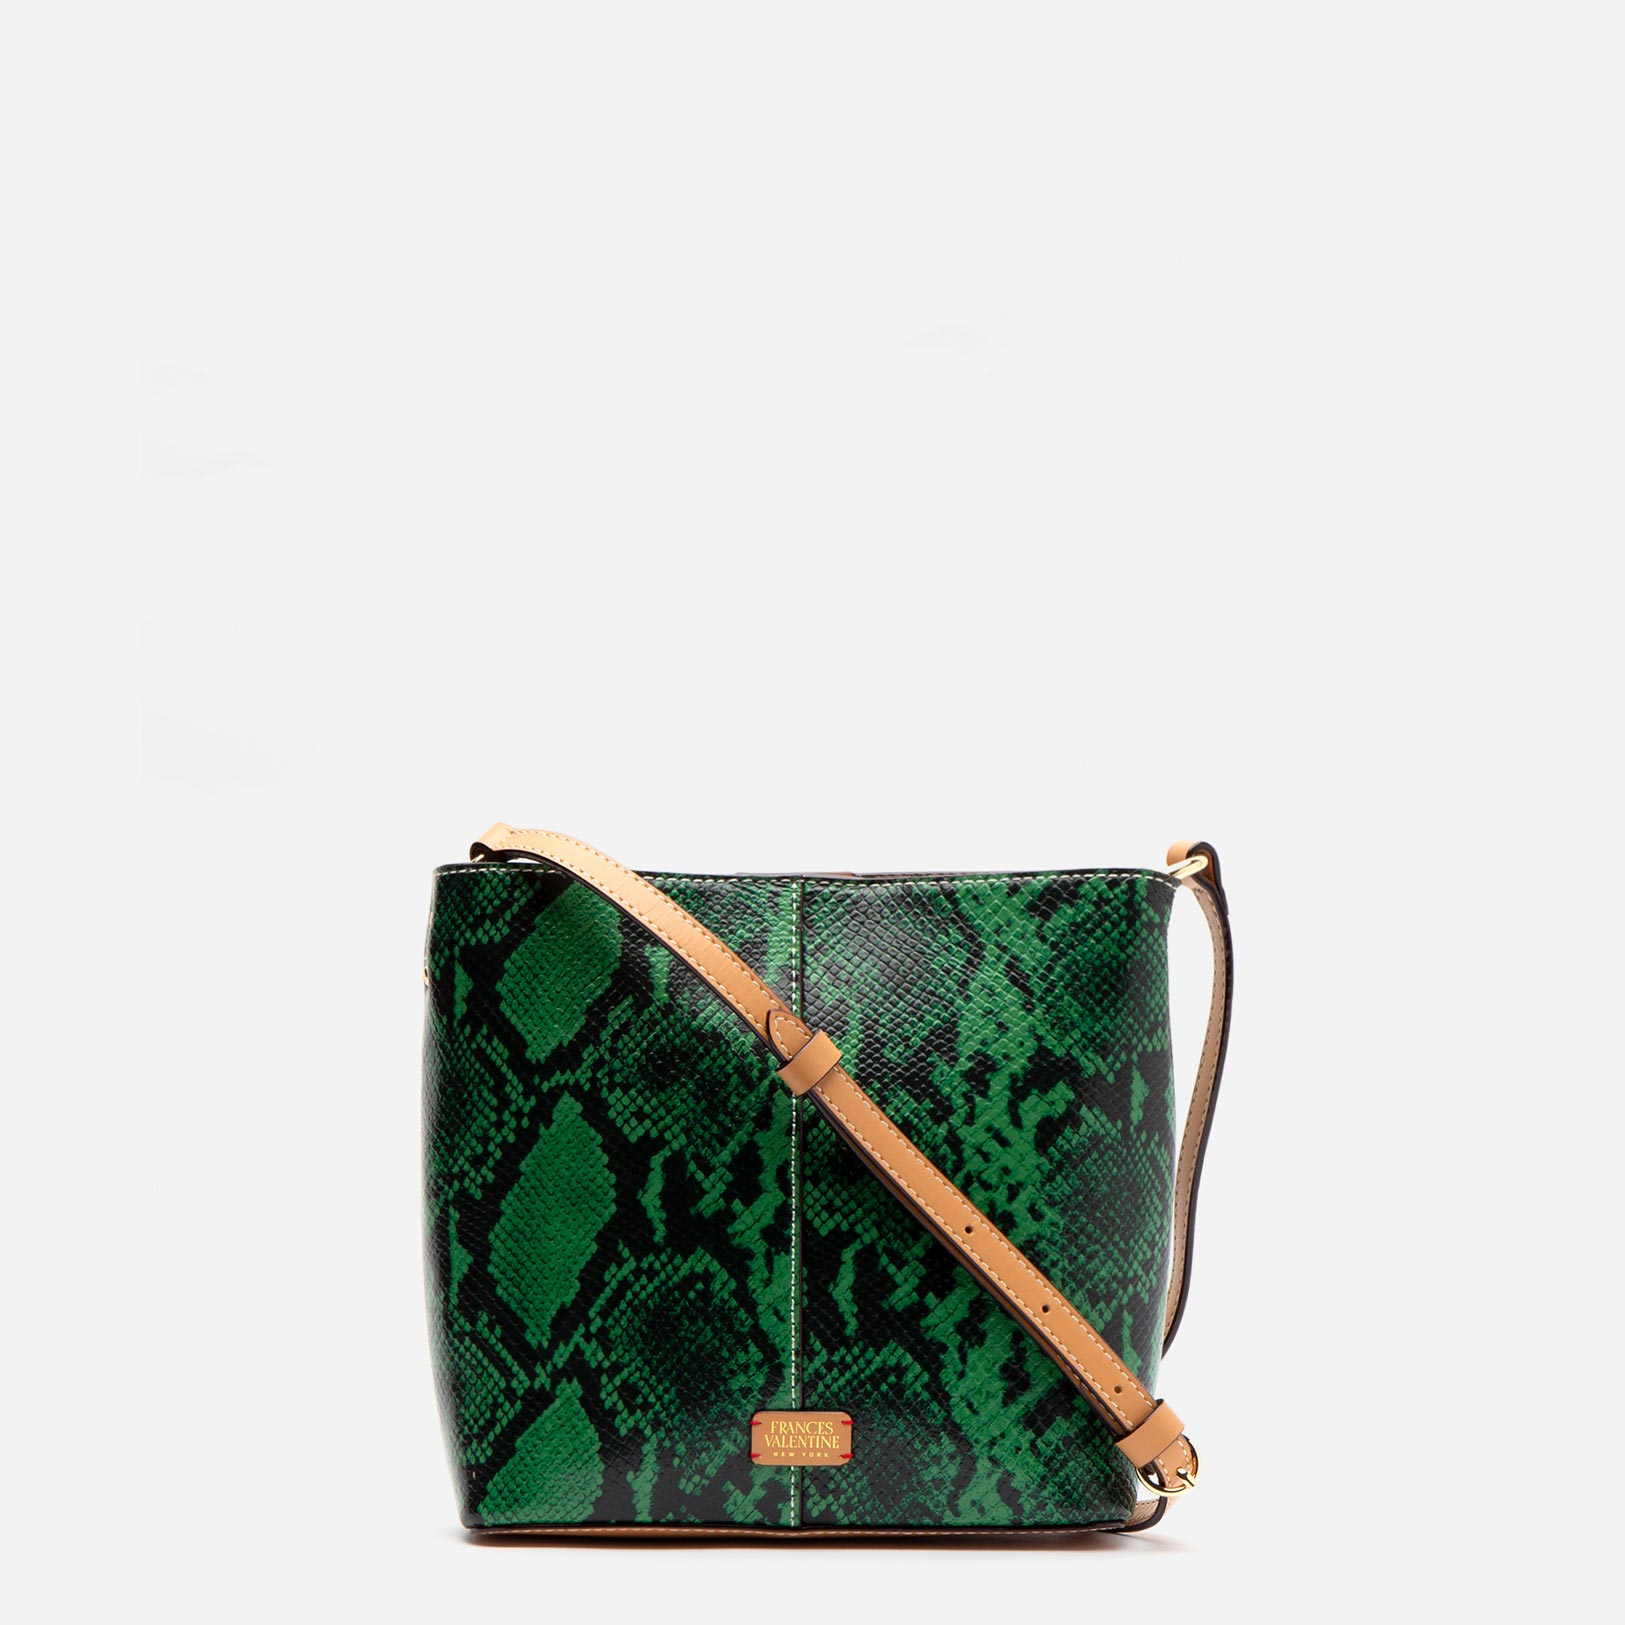 Small Finn Snake Embossed Leather Green - Frances Valentine